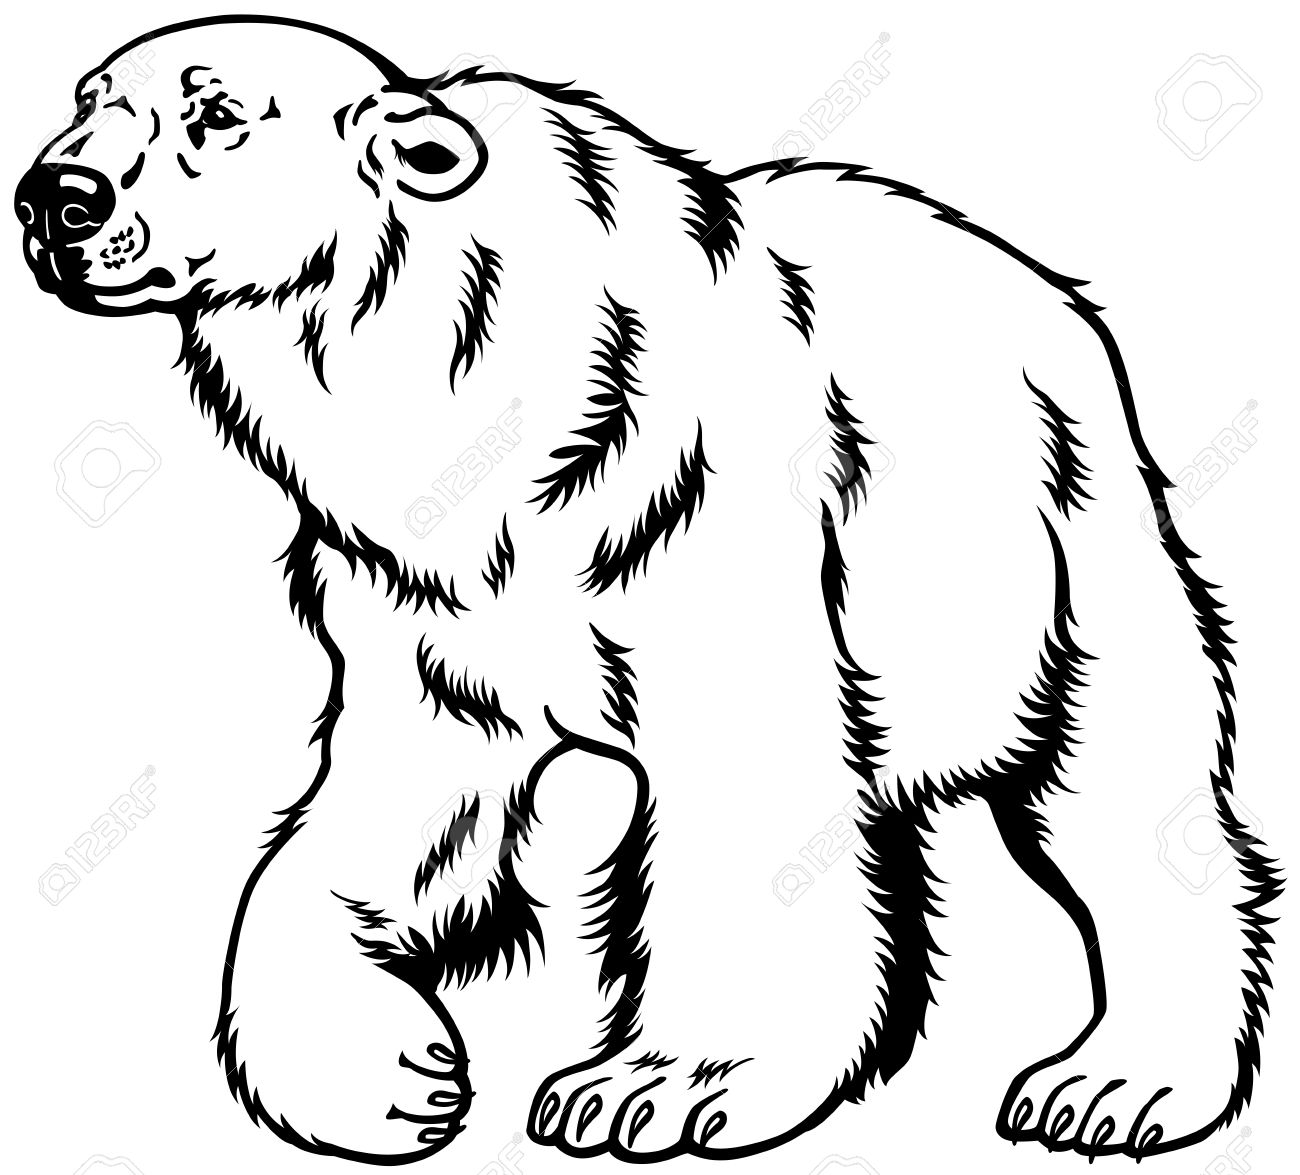 polar bear black and white image.